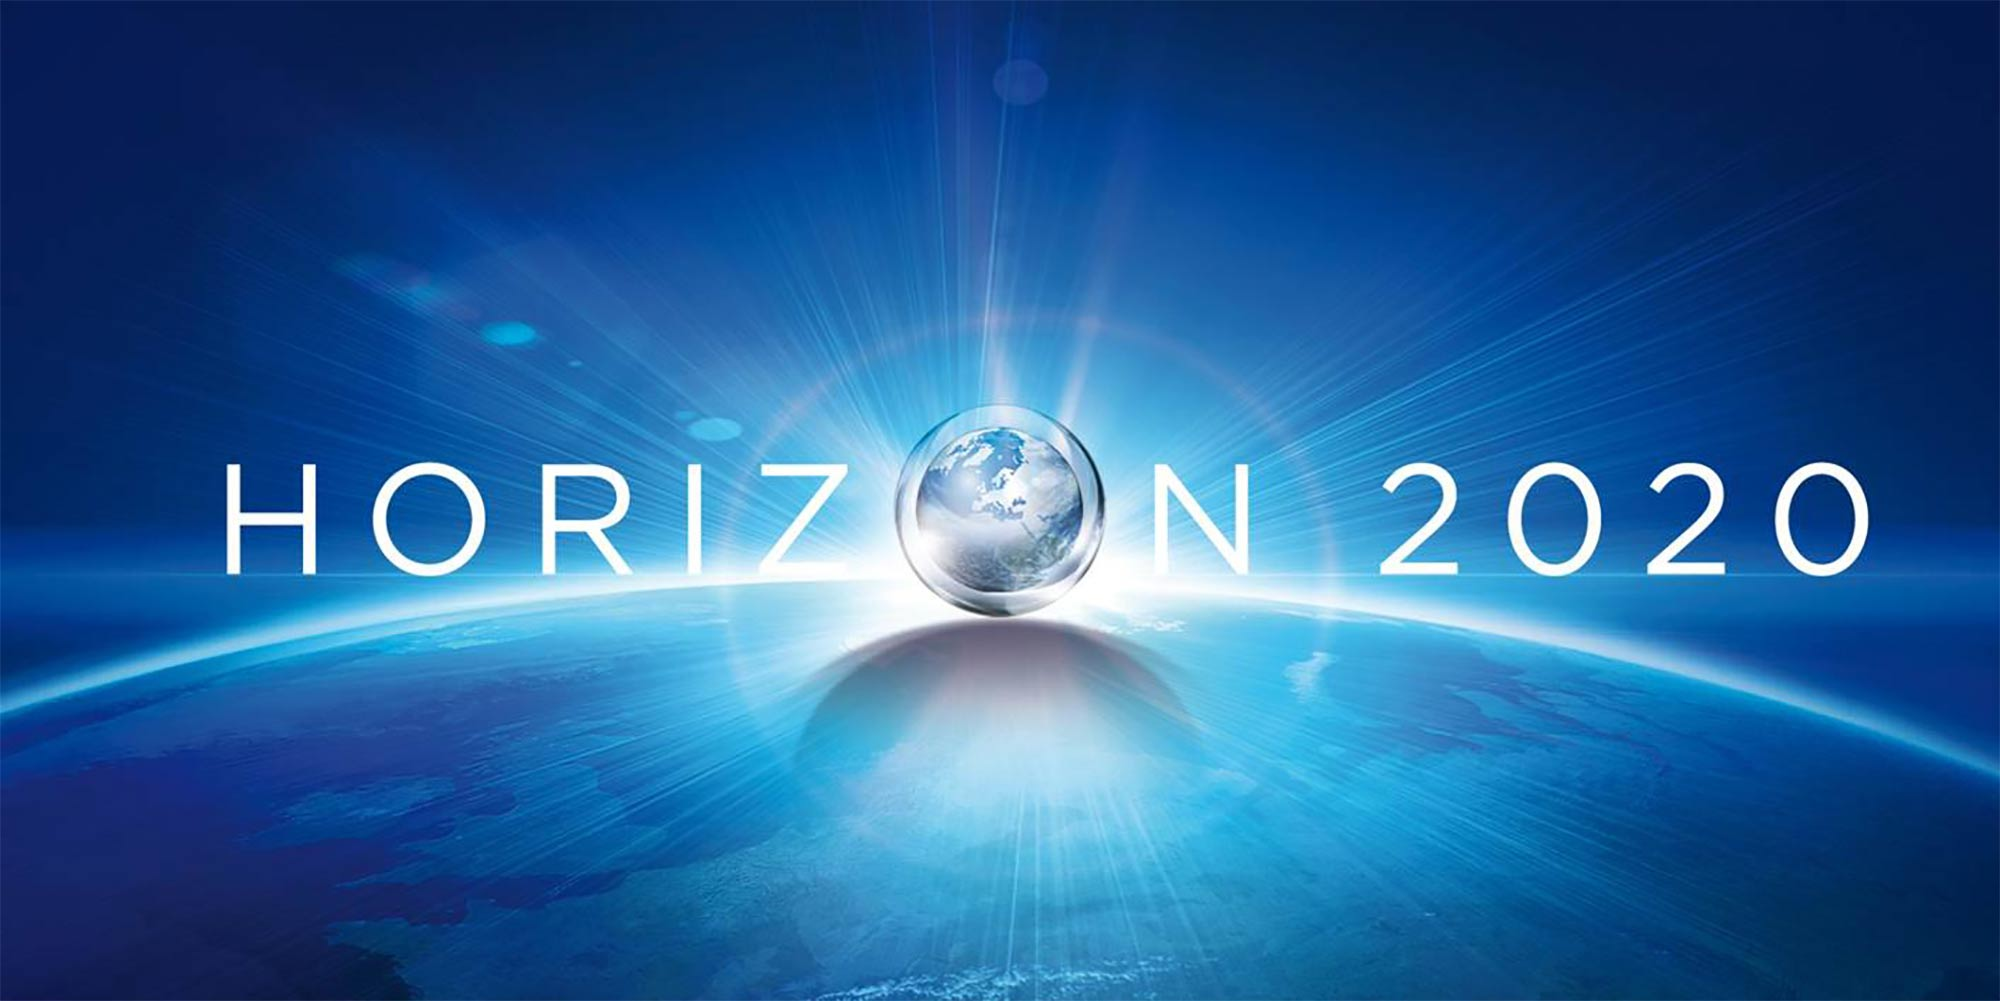 Horizon 2020 VIA ALTA